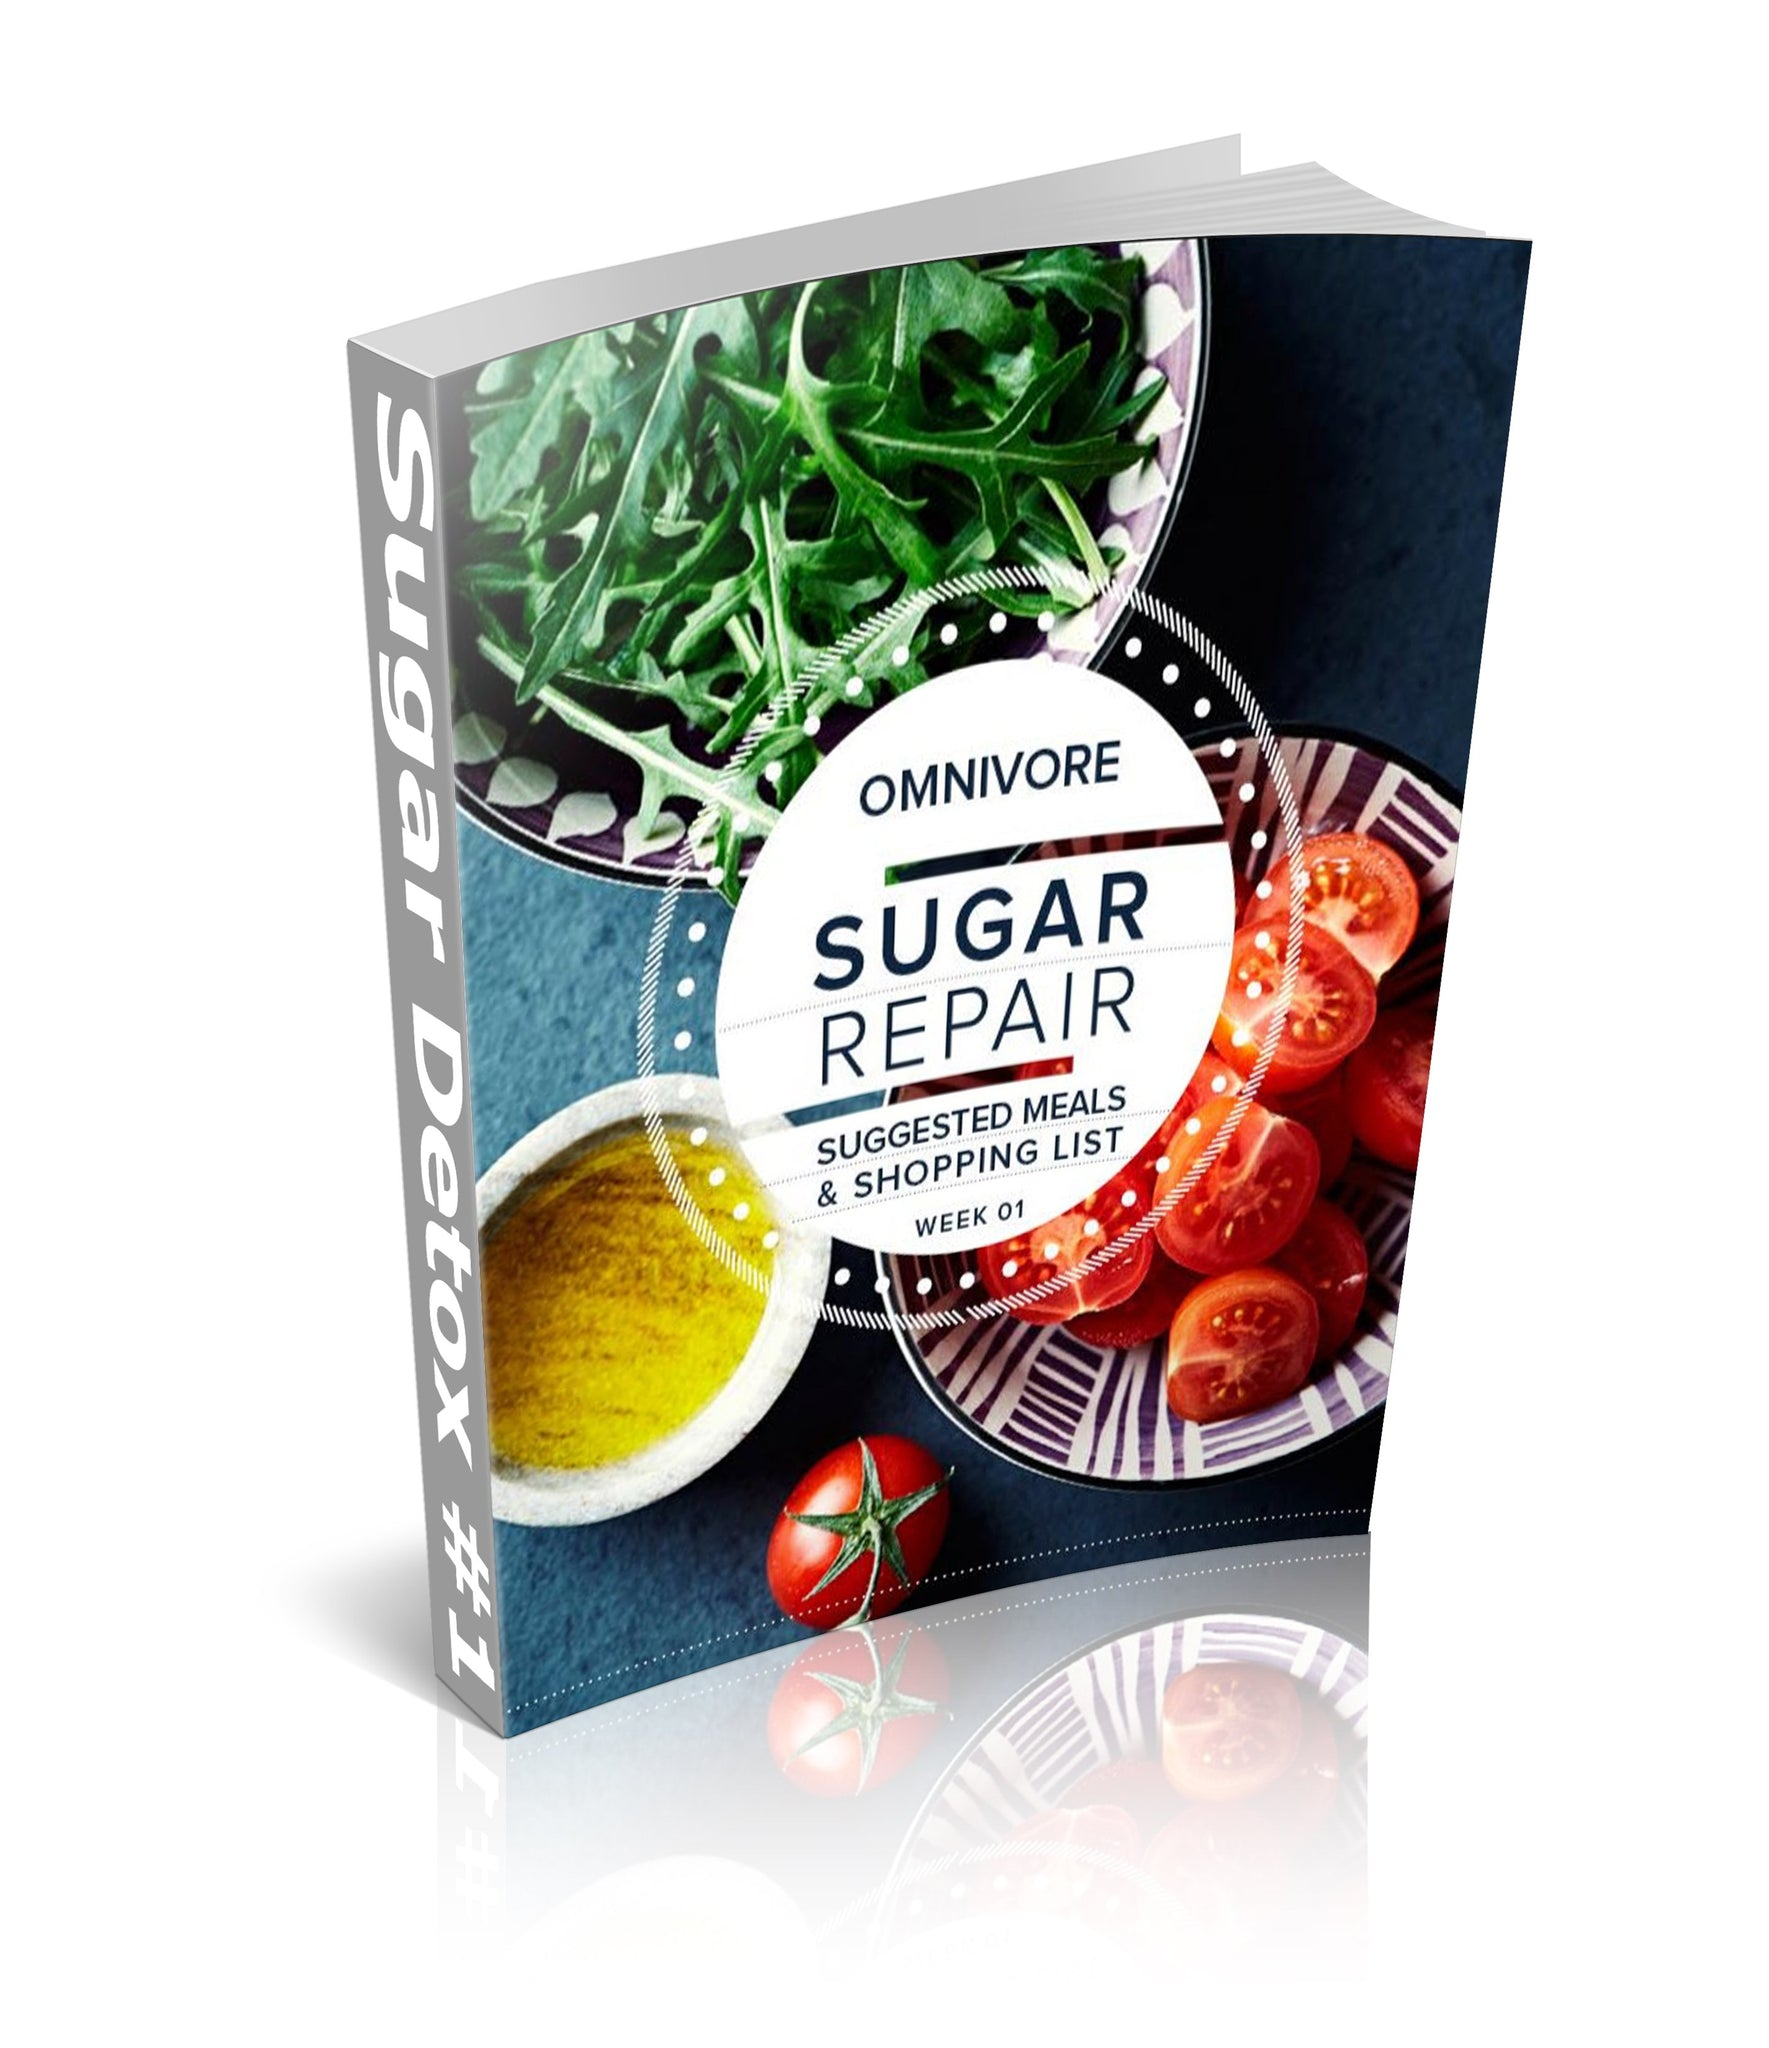 Omnivore Sugar Repair Suggested Meals and Shopping List 01 - Free Download - traversebayfarms